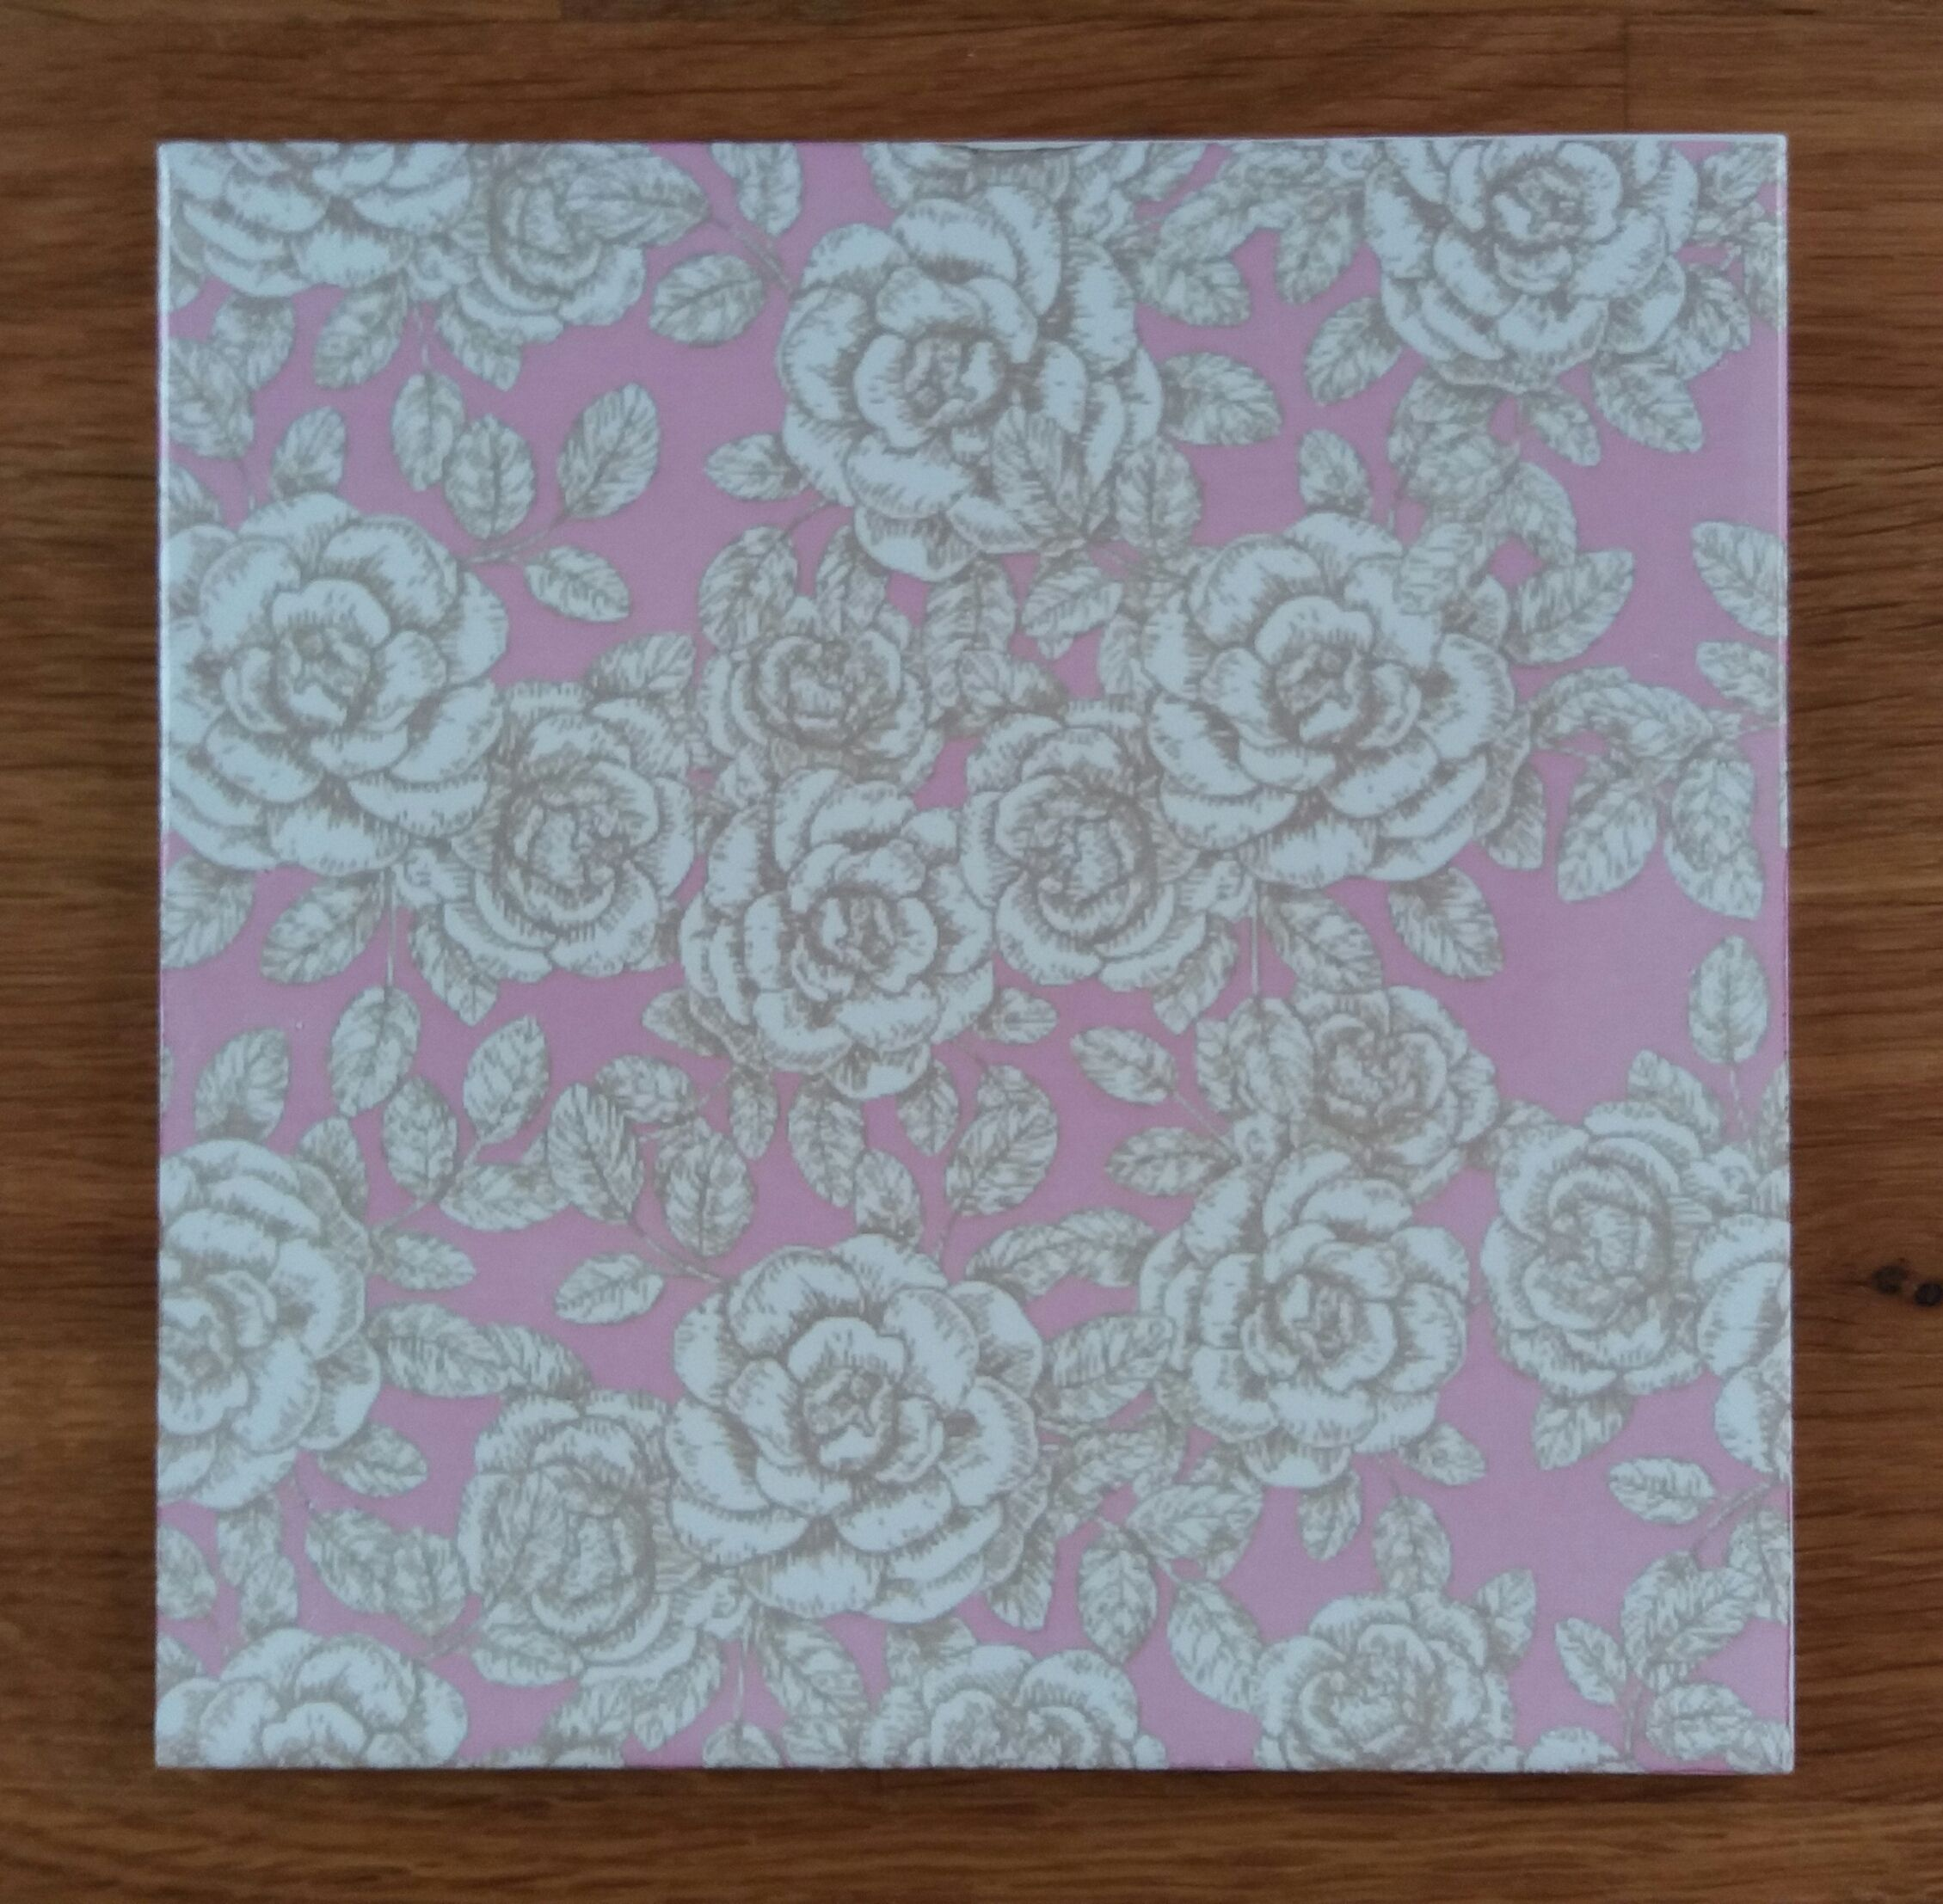 Pink and white floral patterned decorative ceramic wall tile by ...